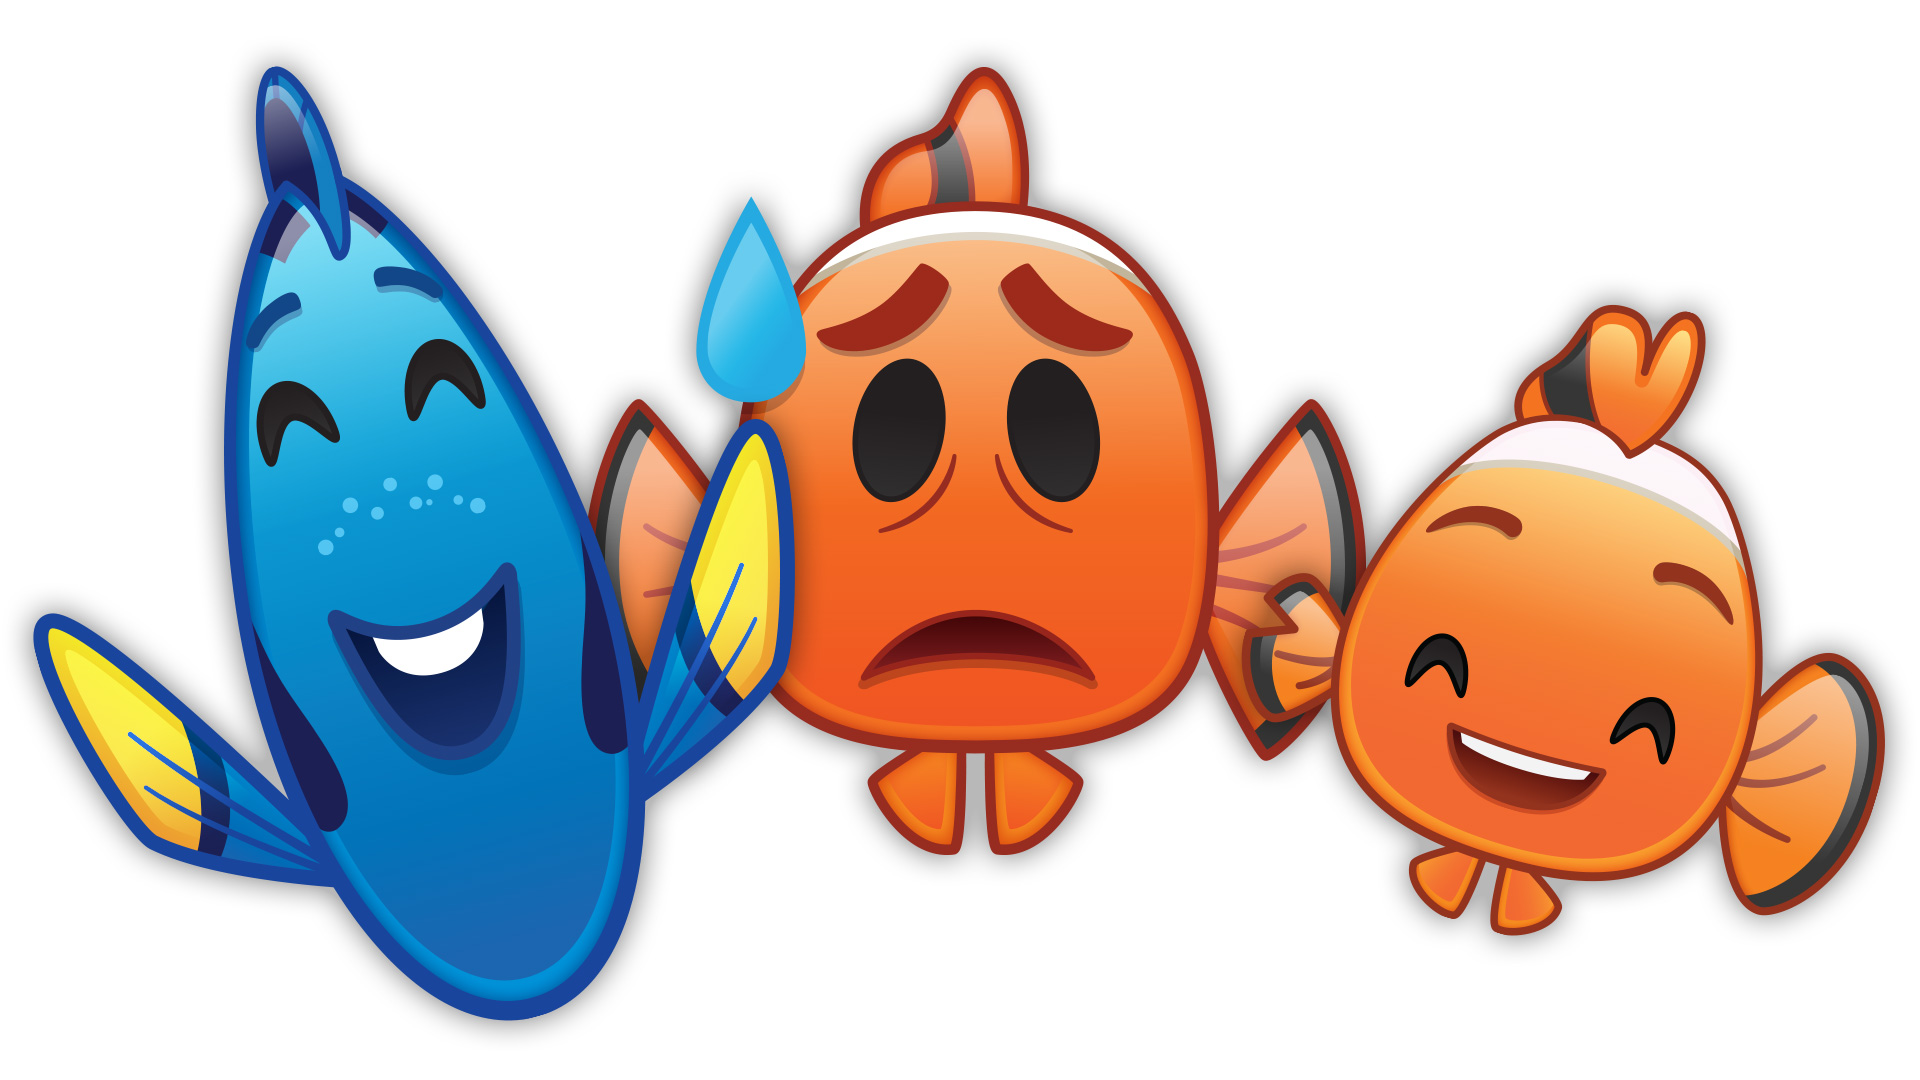 Findet Nemo - Emoji Version